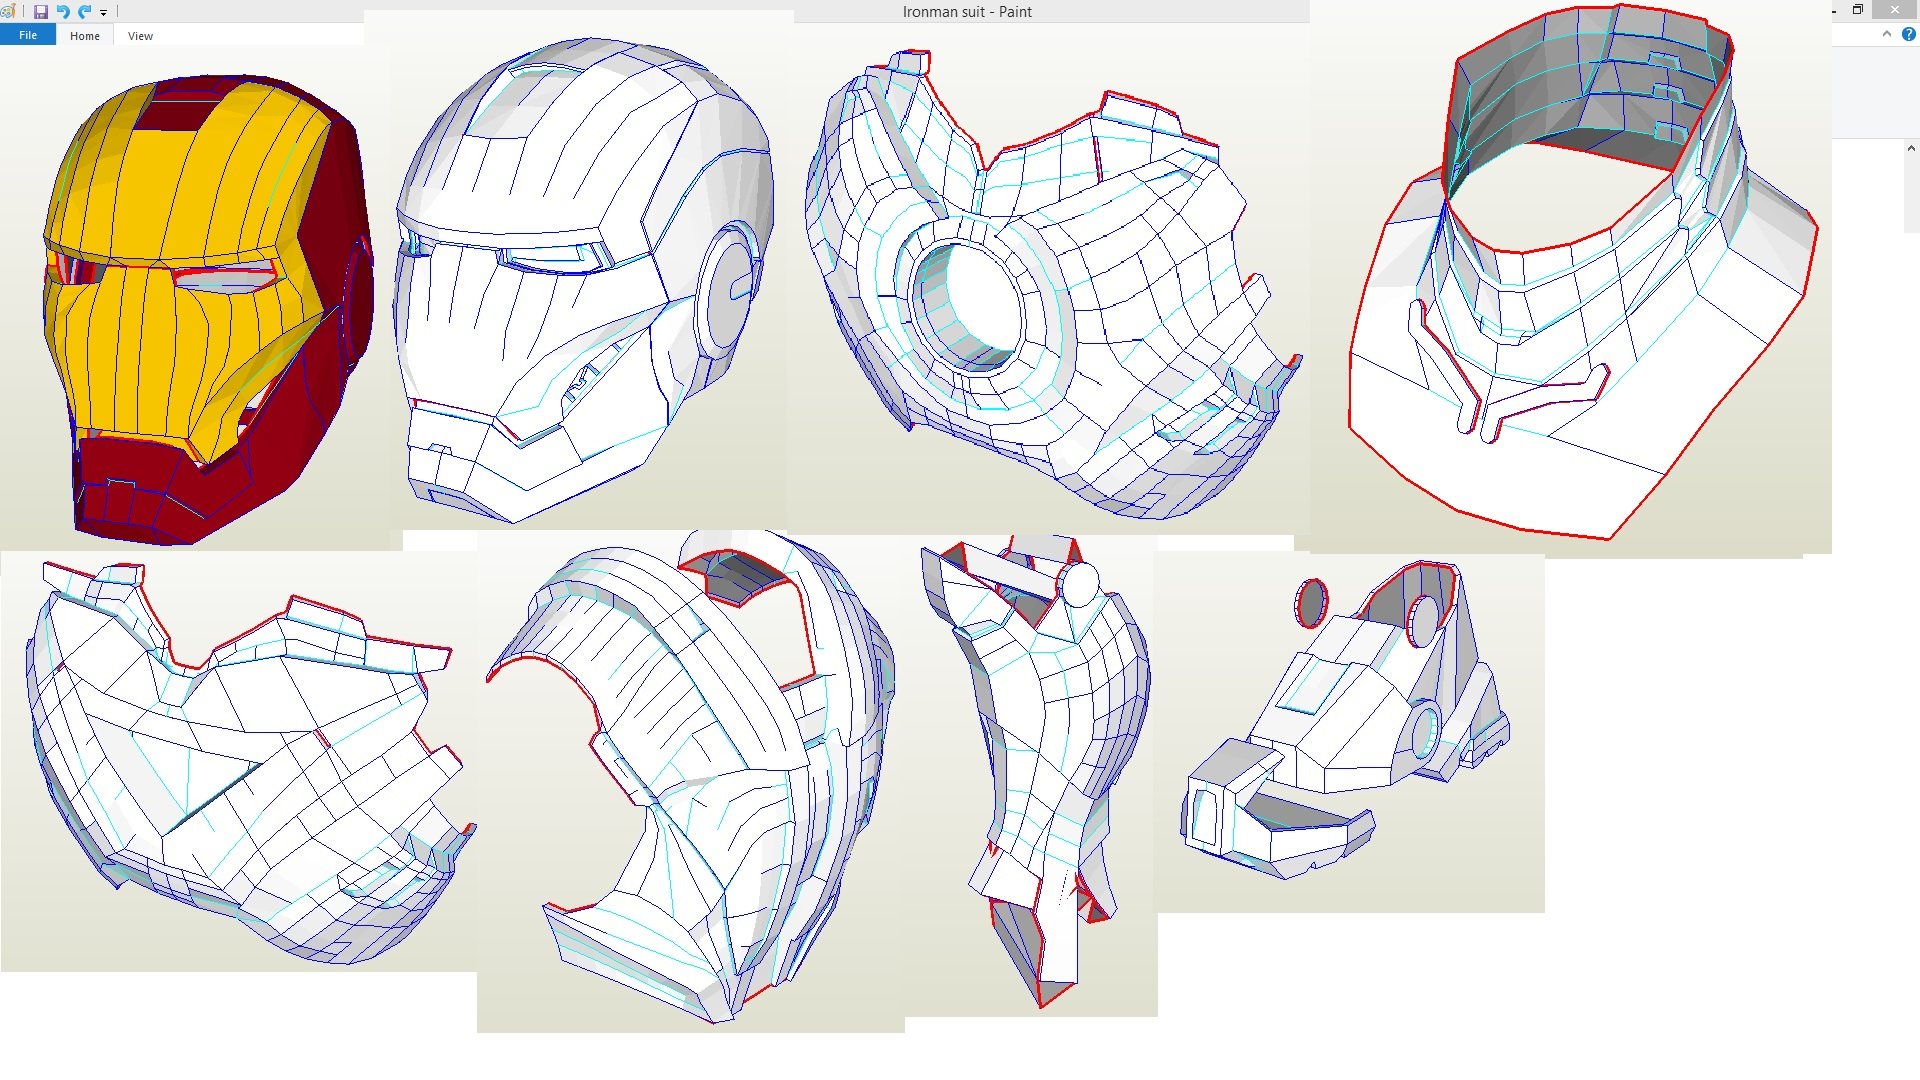 iron man suit template - iron man suit collection by houay2005 on deviantart